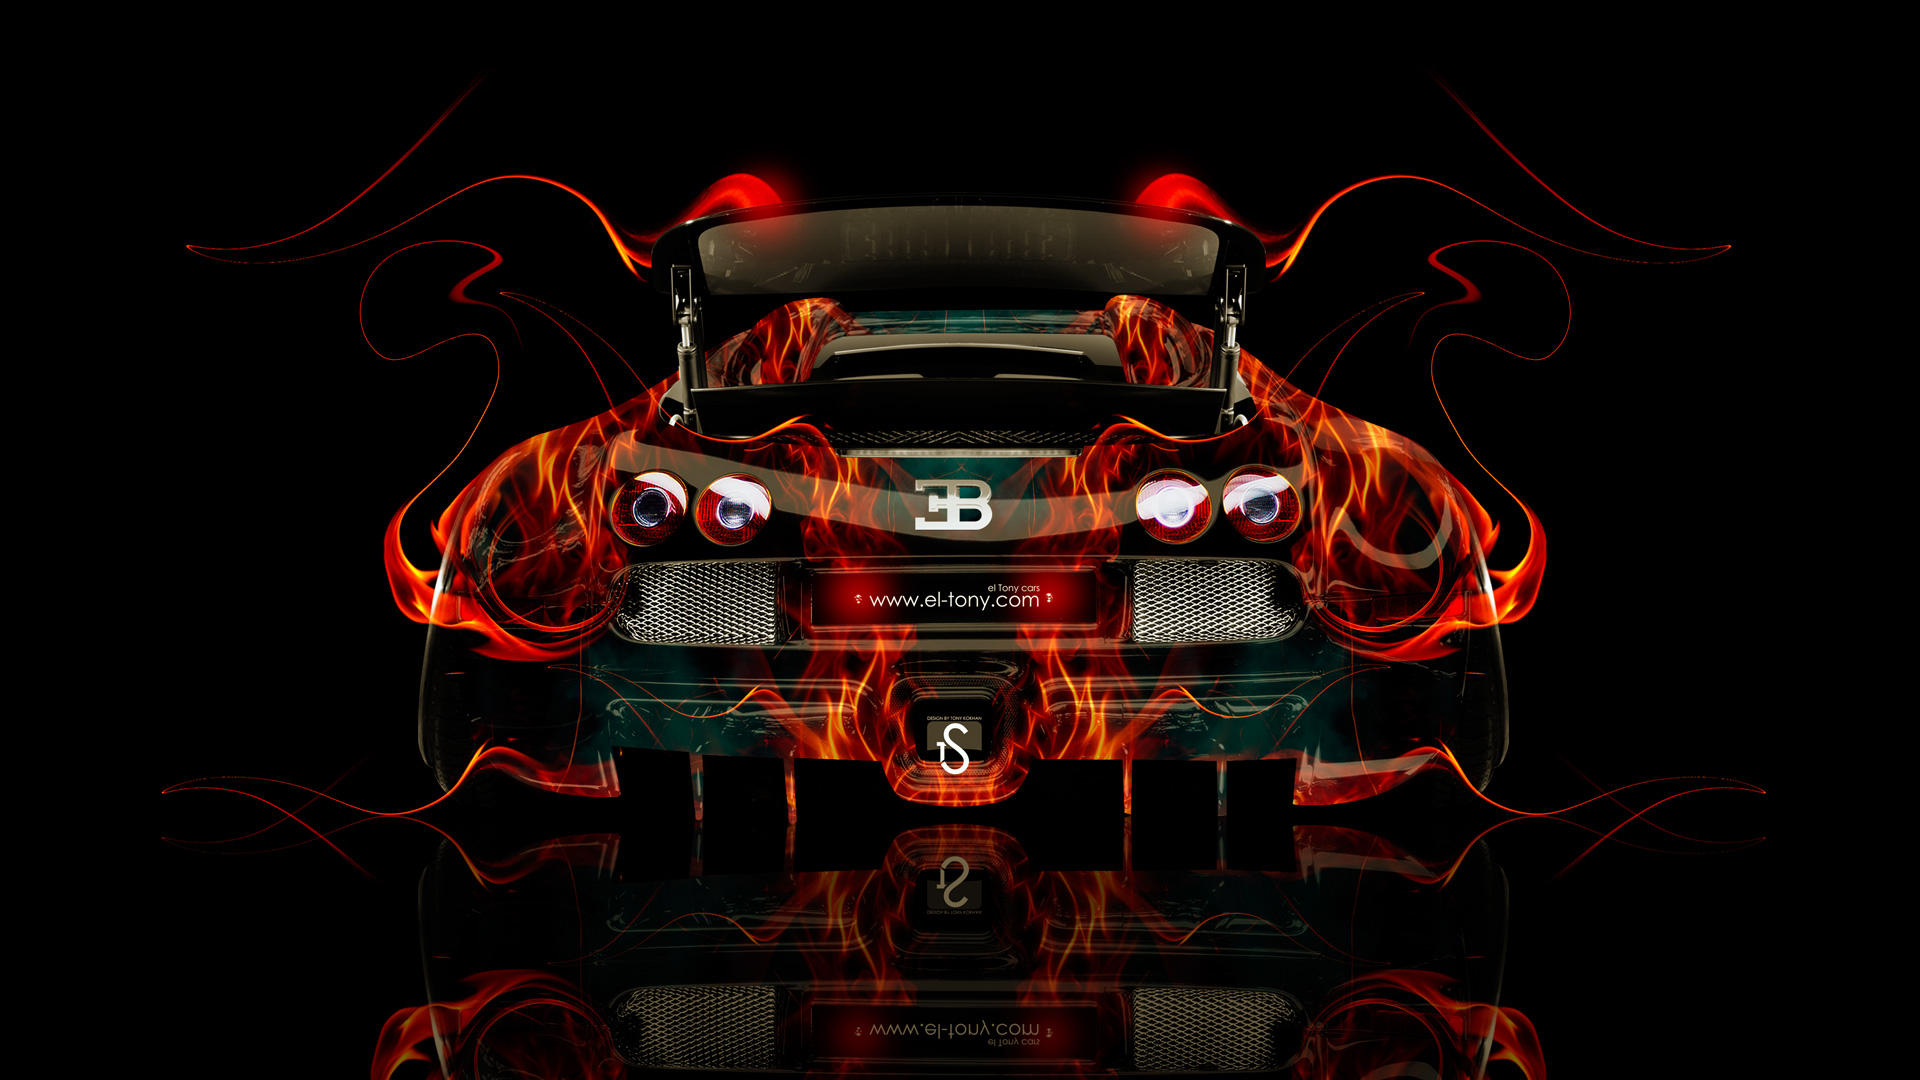 Etonnant Bugatti Veyron Front Fire Abstract Car 2014 · Bugatti Veyron Tuning Back Fire  Car 2014